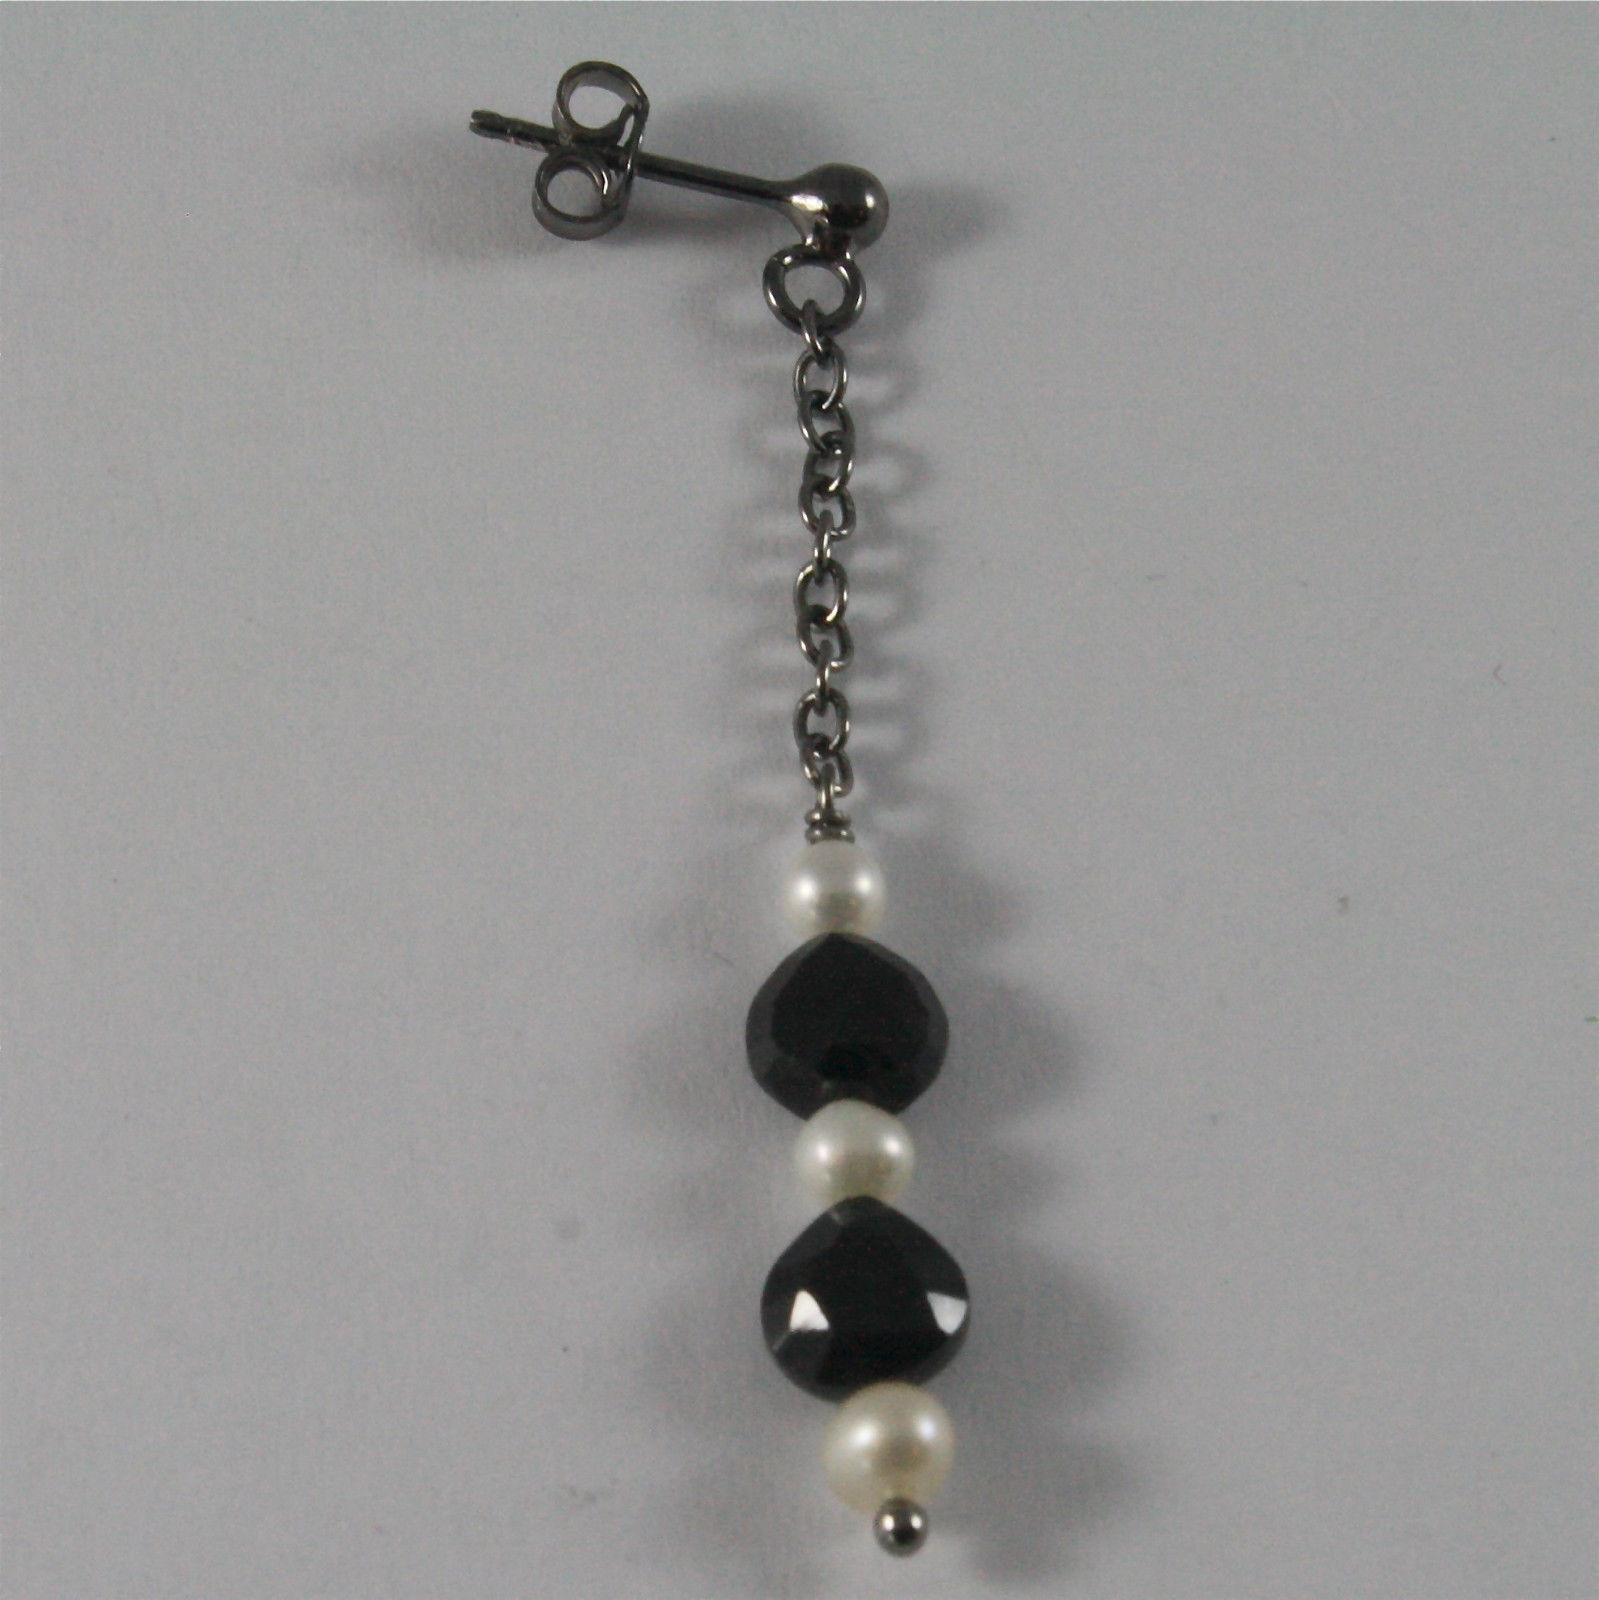 .925 BURNISHED SILVER EARRINGS WITH WHITE FW PEARLS AND BLACK SPINEL 1.97 INCH